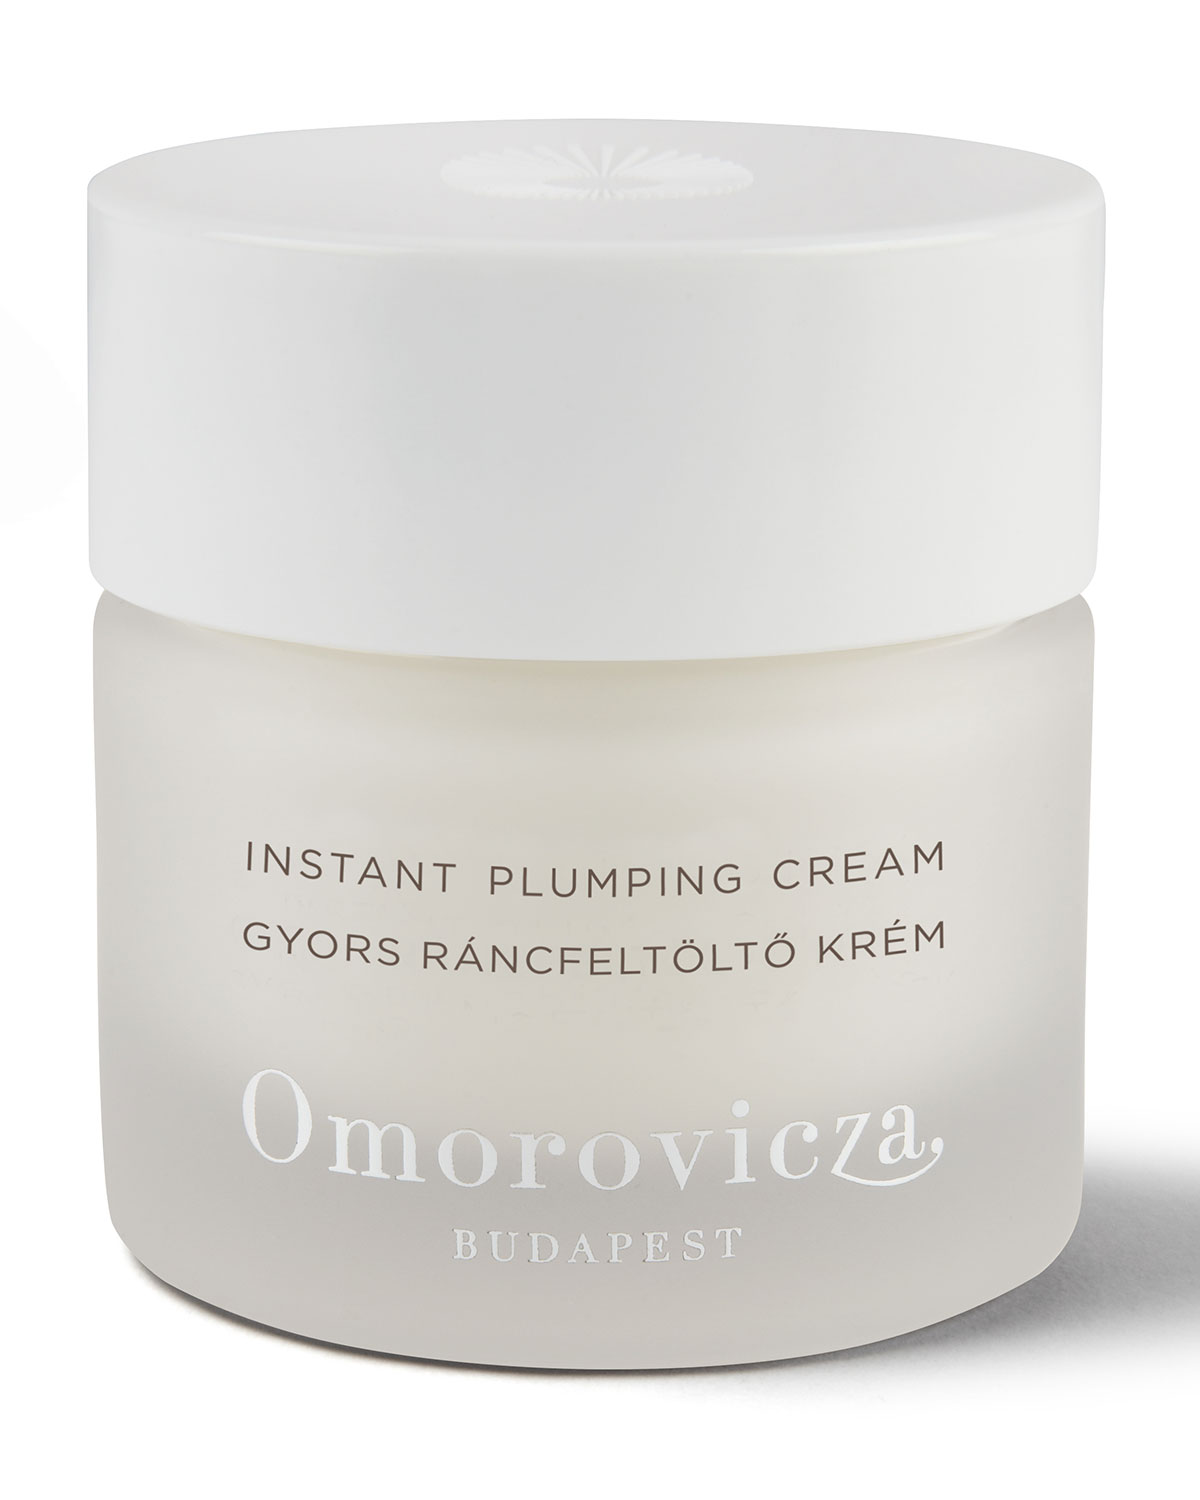 Omorovicza INSTANT PLUMPING CREAM, 1.7 OZ./ 50 ML